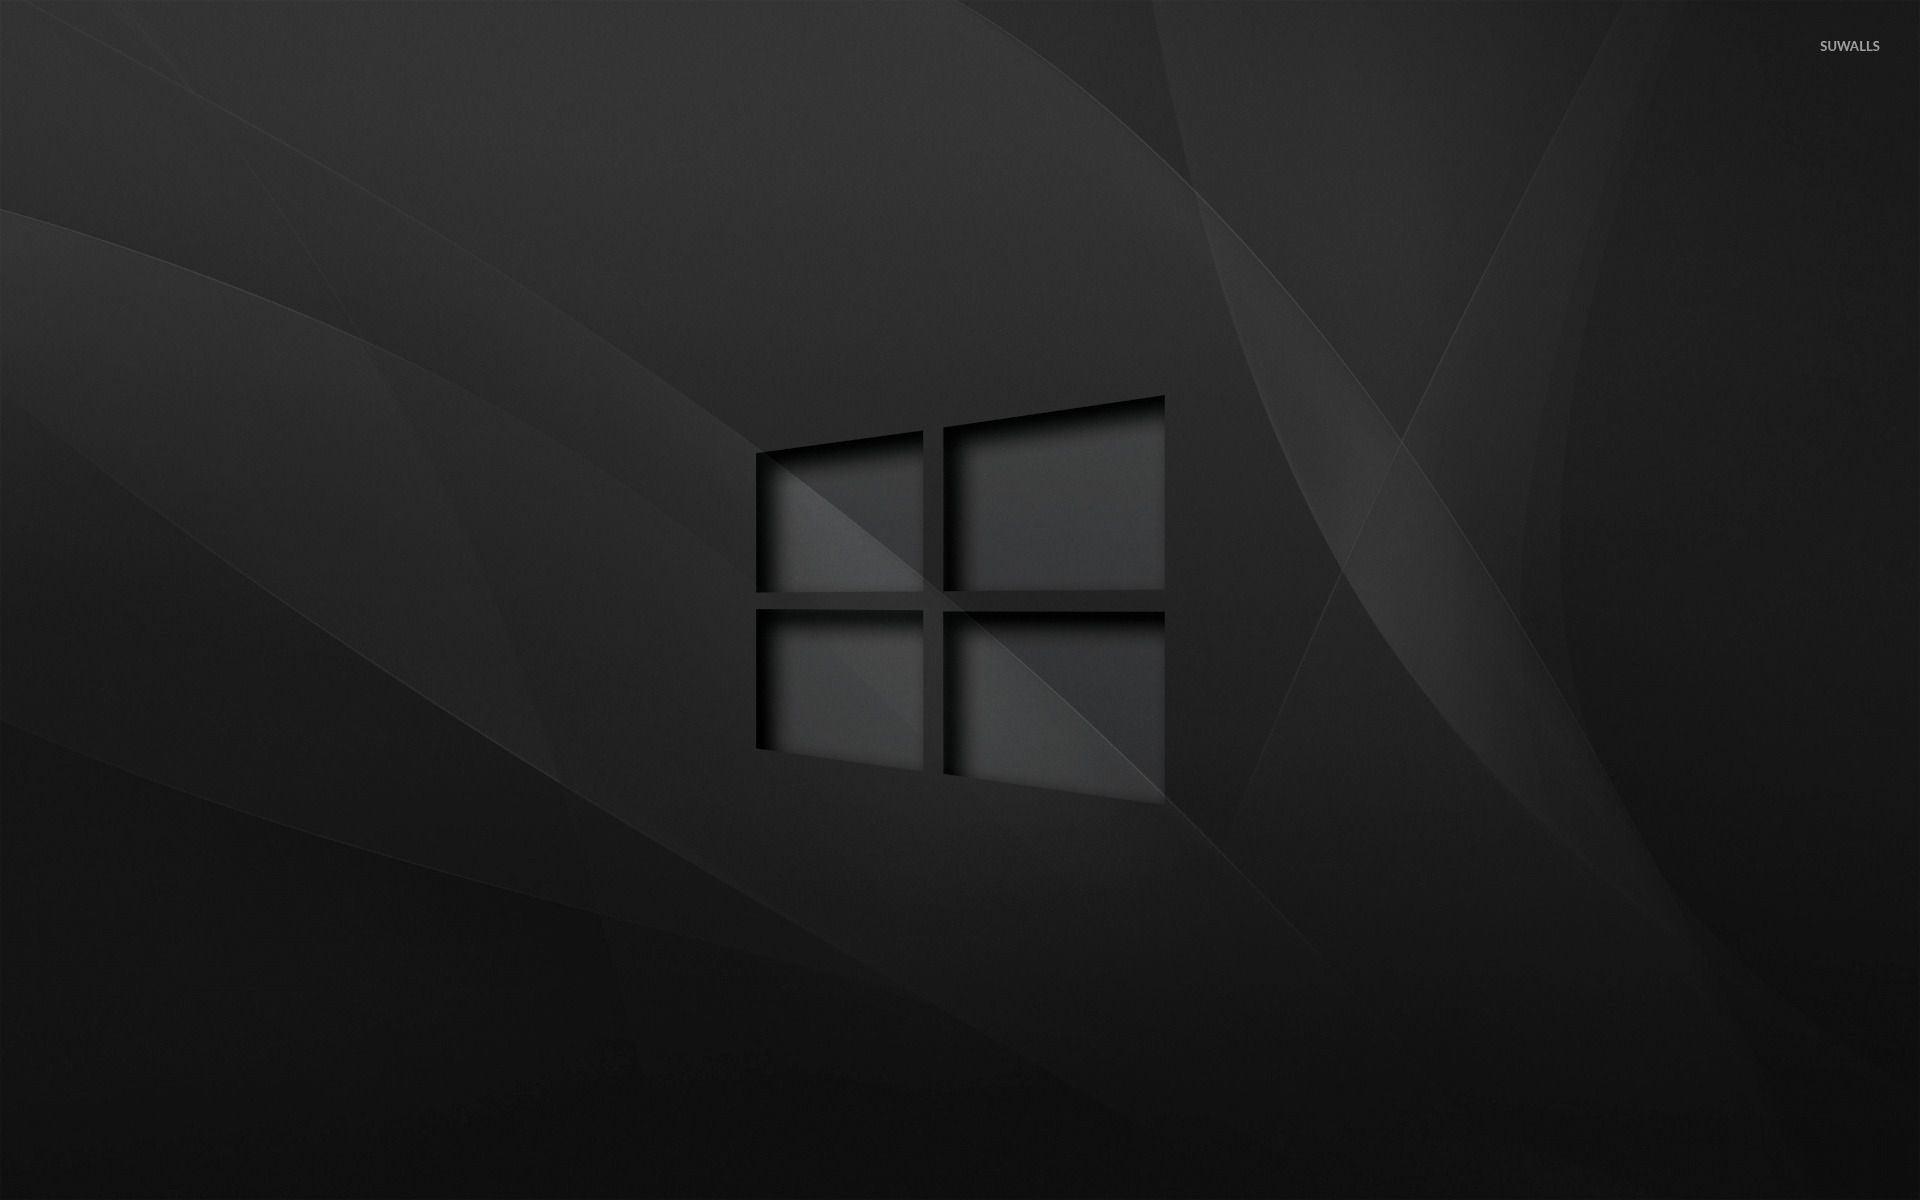 Black Windows Wallpapers Top Free Black Windows Backgrounds Wallpaperaccess